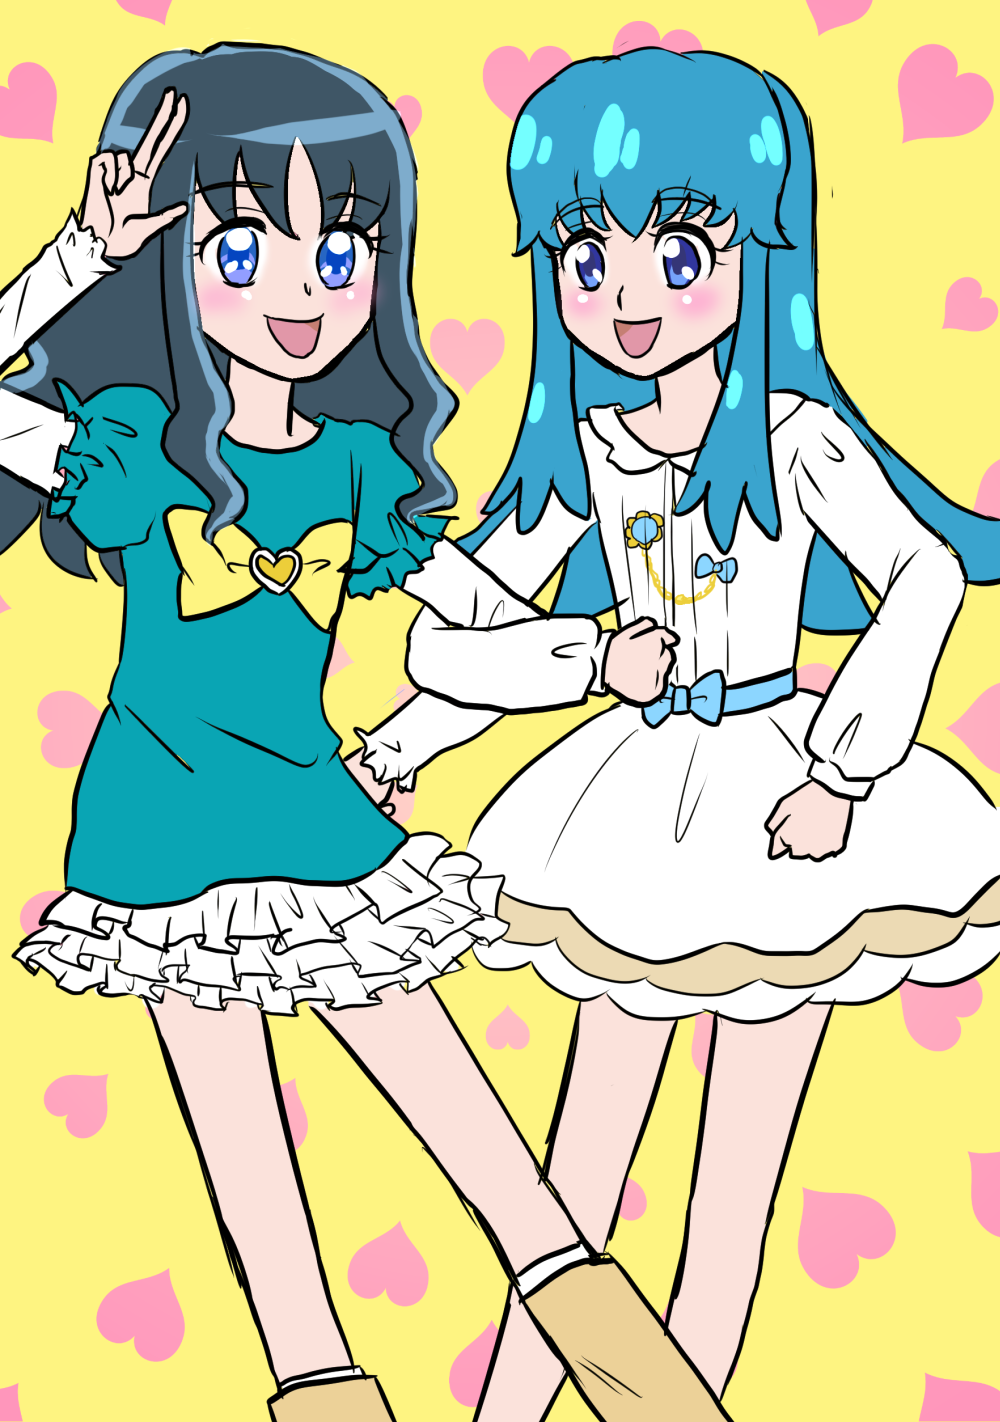 m_and (@mdk_and)さんのイラスト